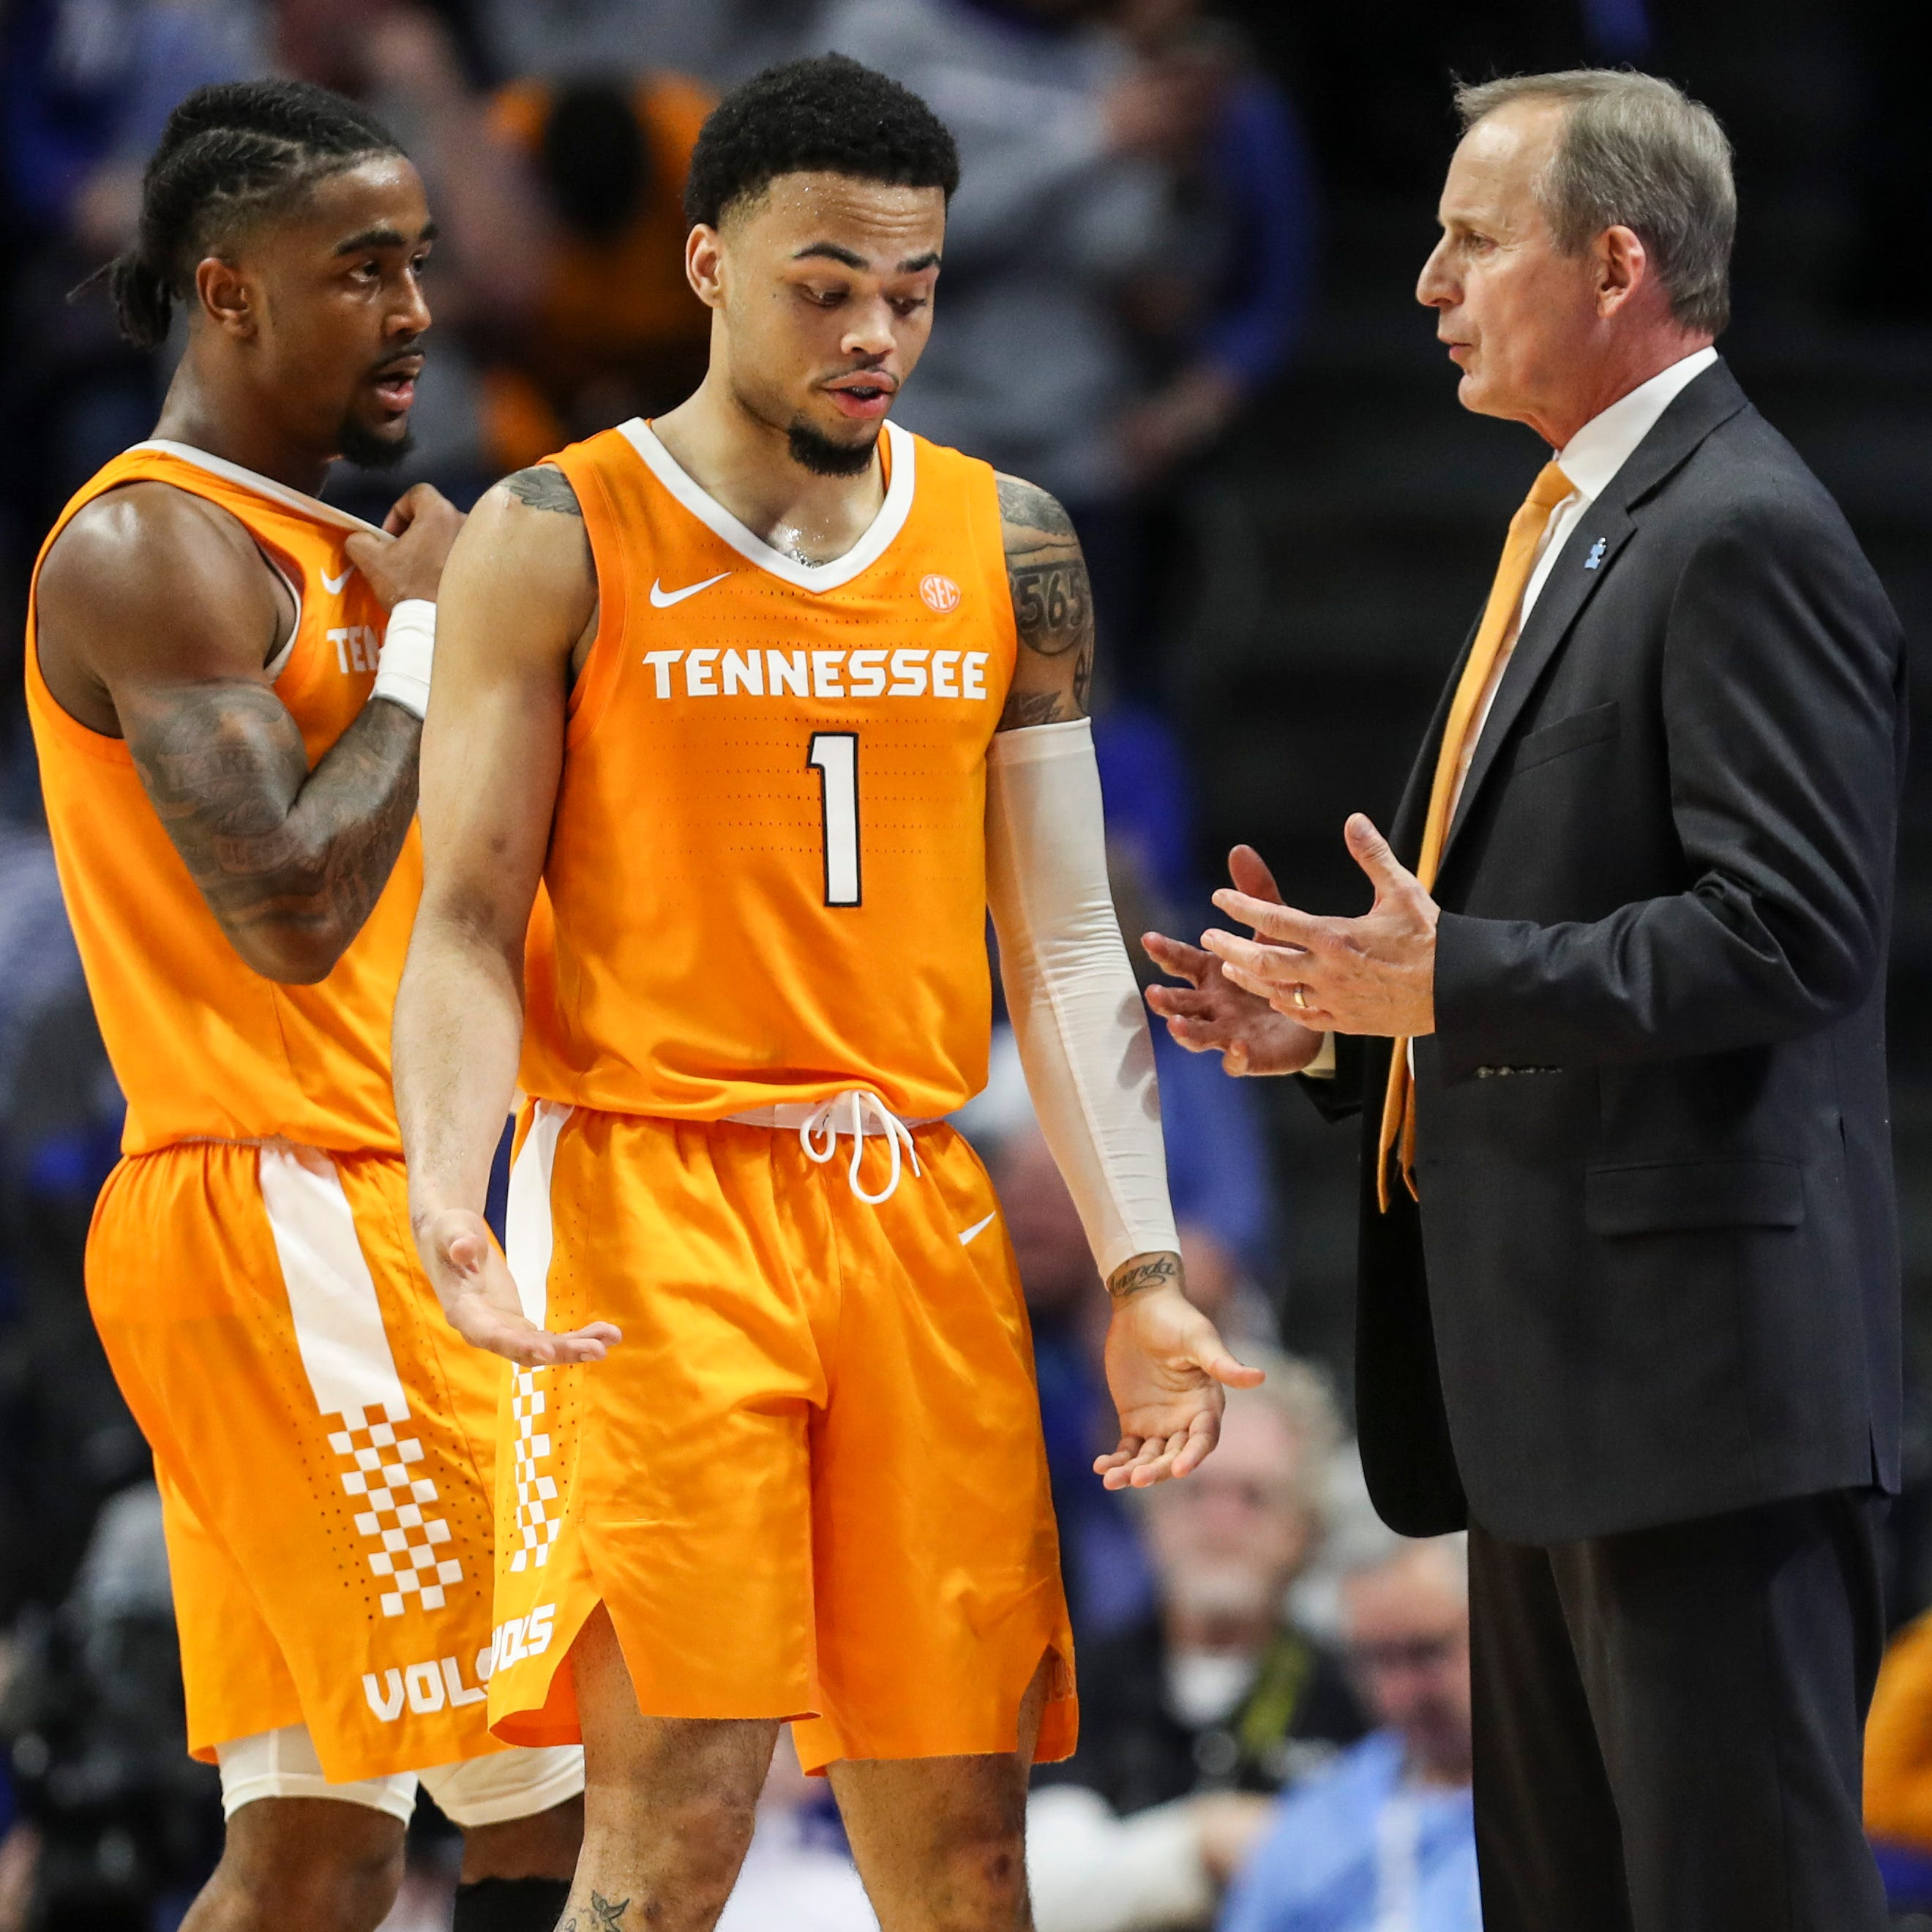 UT Vols basketball drops in polls after Kentucky loss